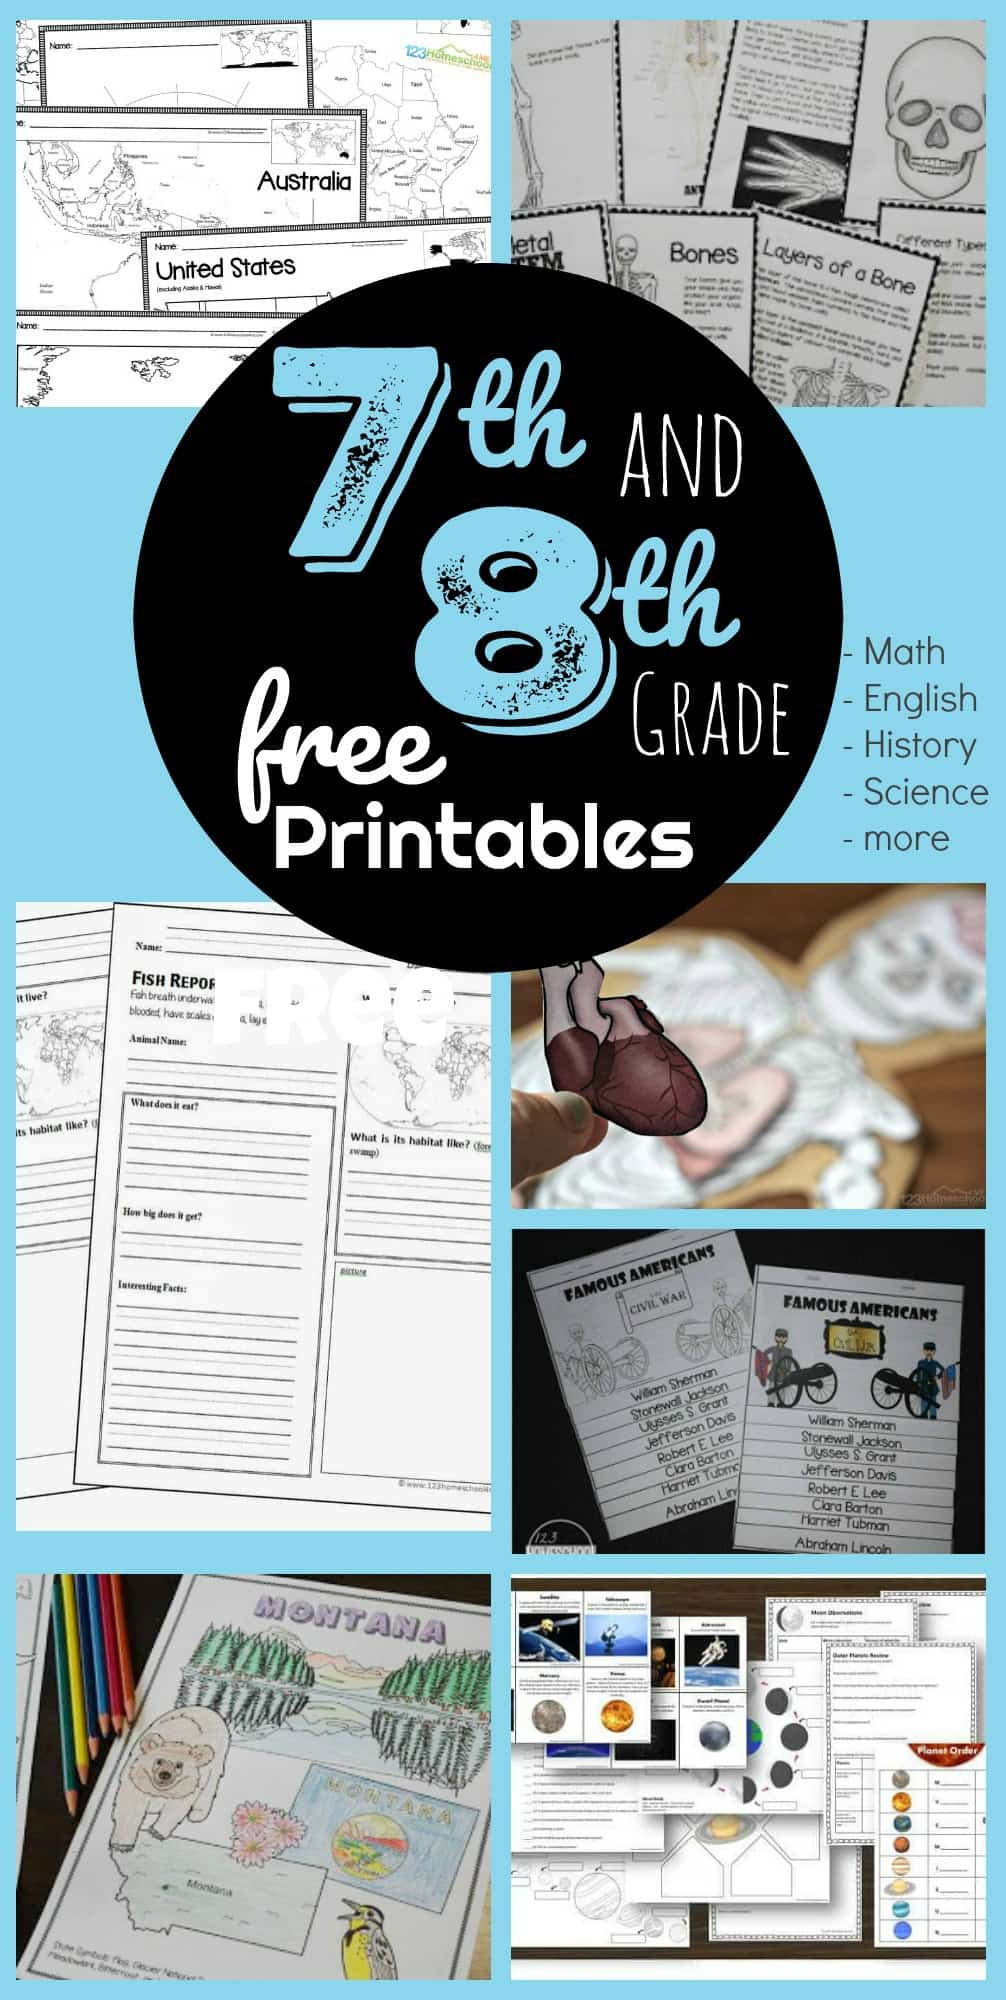 Science Worksheets for 7th Grade Free 7th & 8th Grade Worksheets